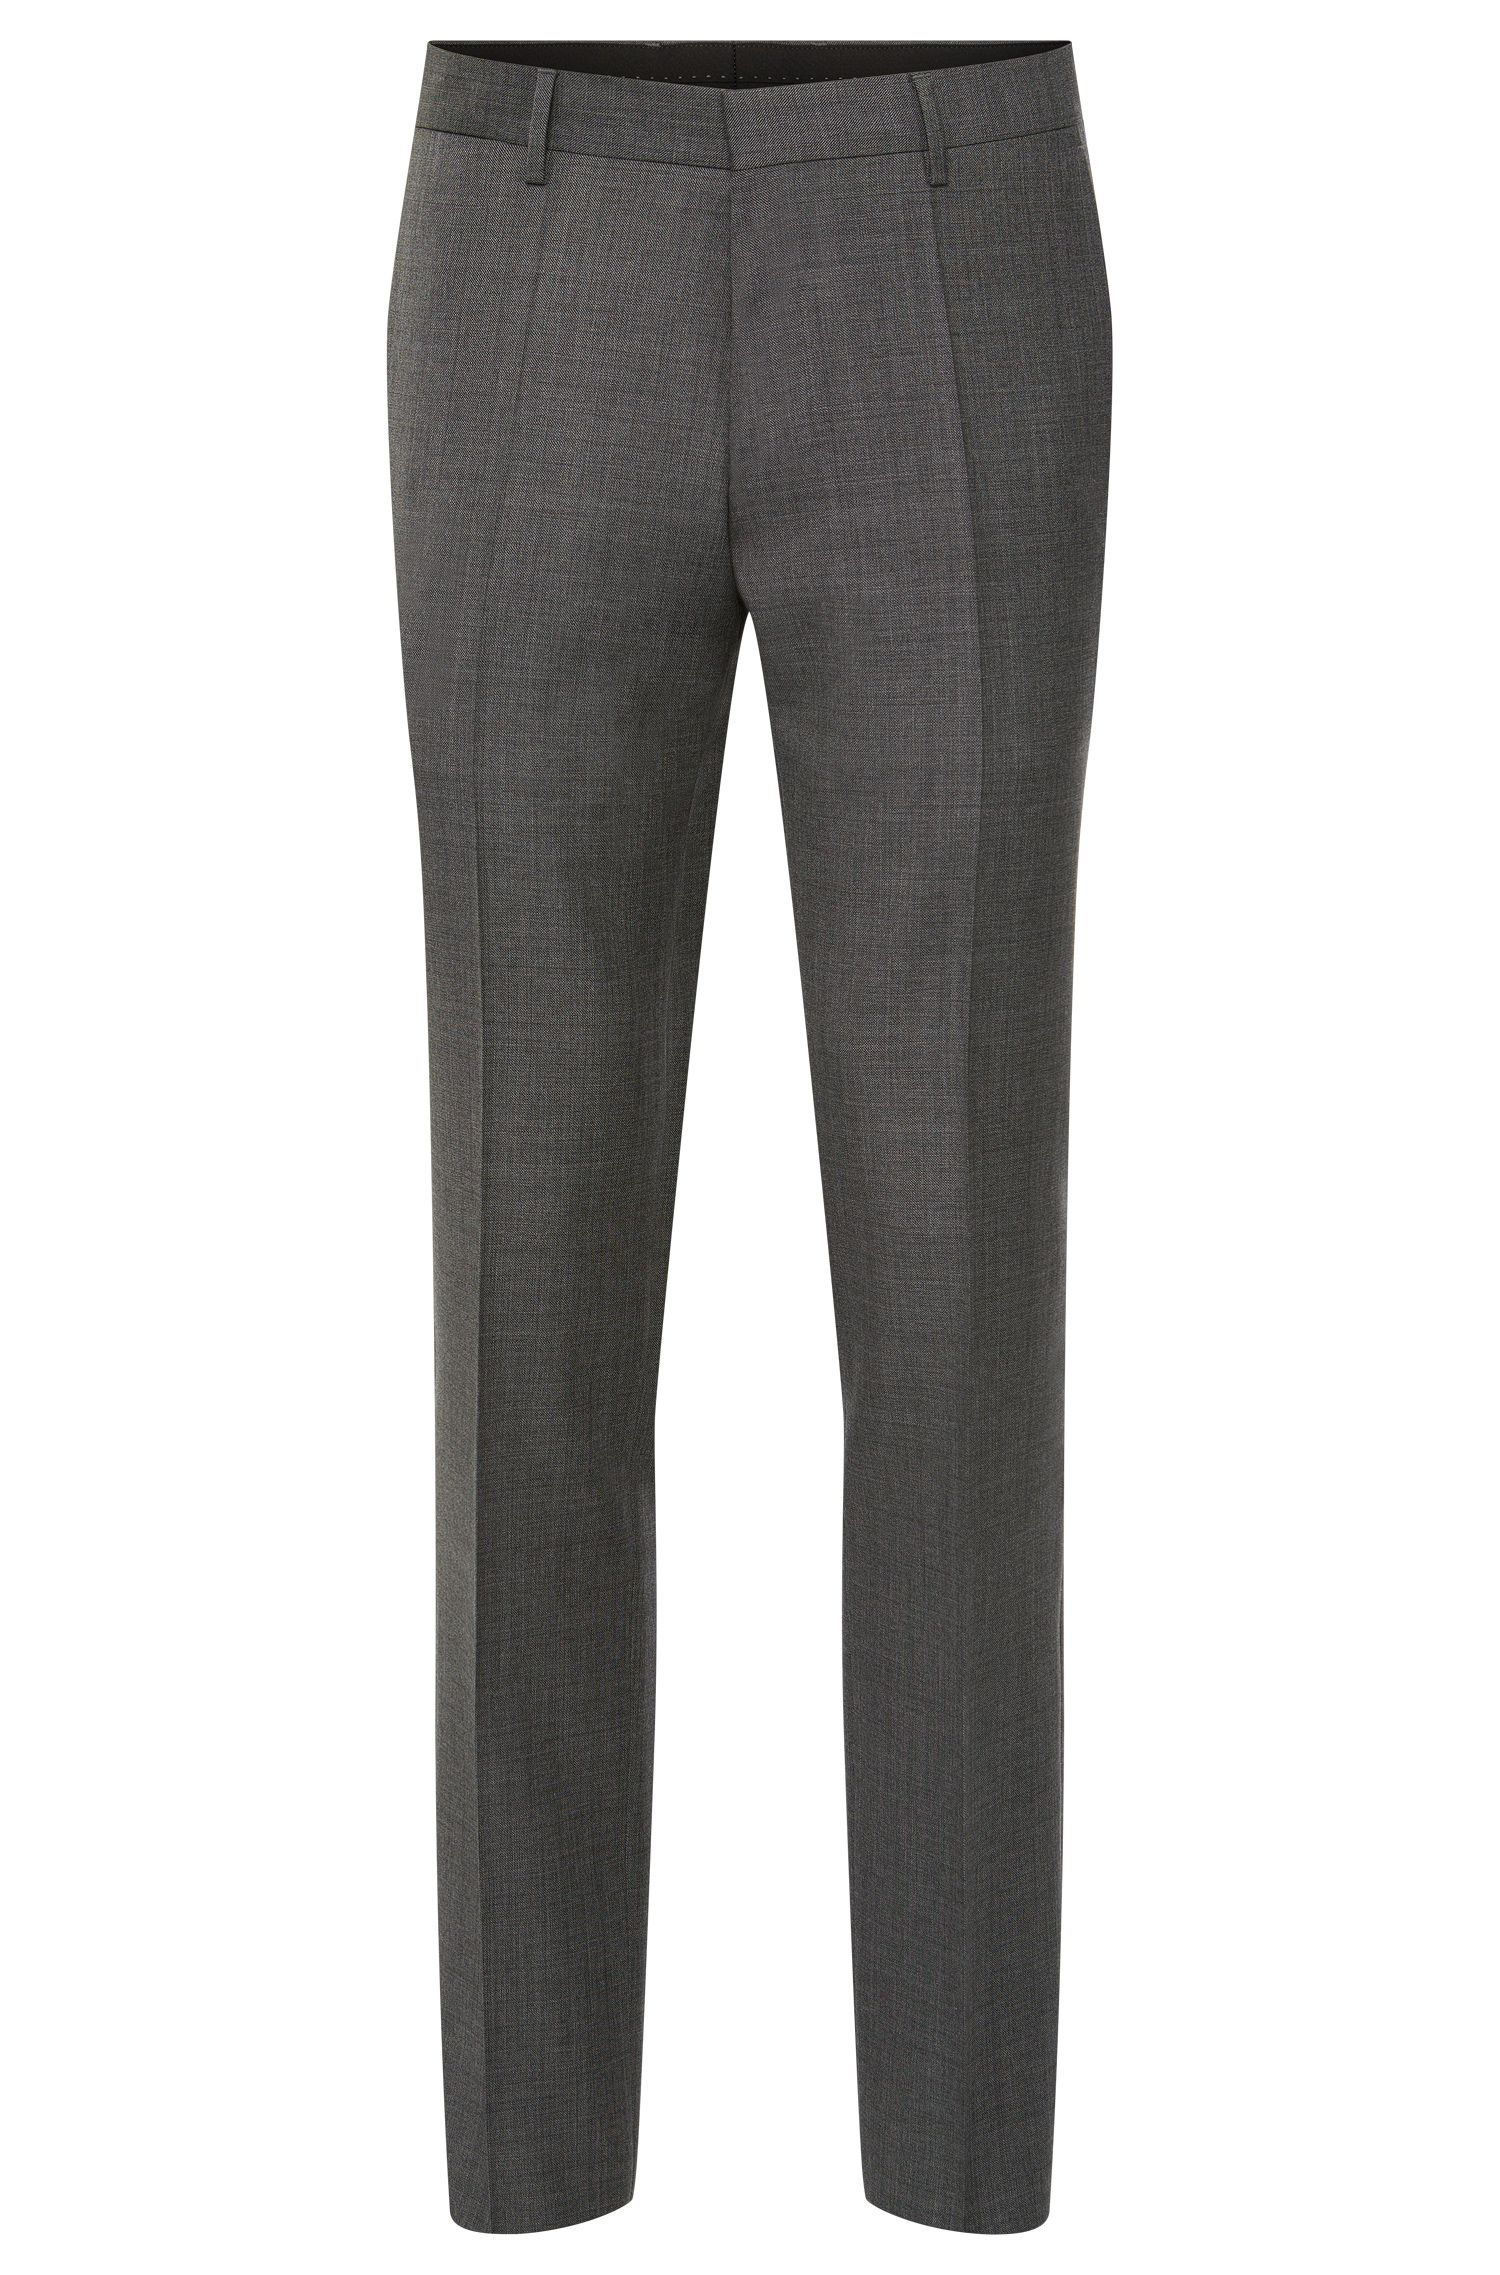 Where To Buy Dress Pants For Men